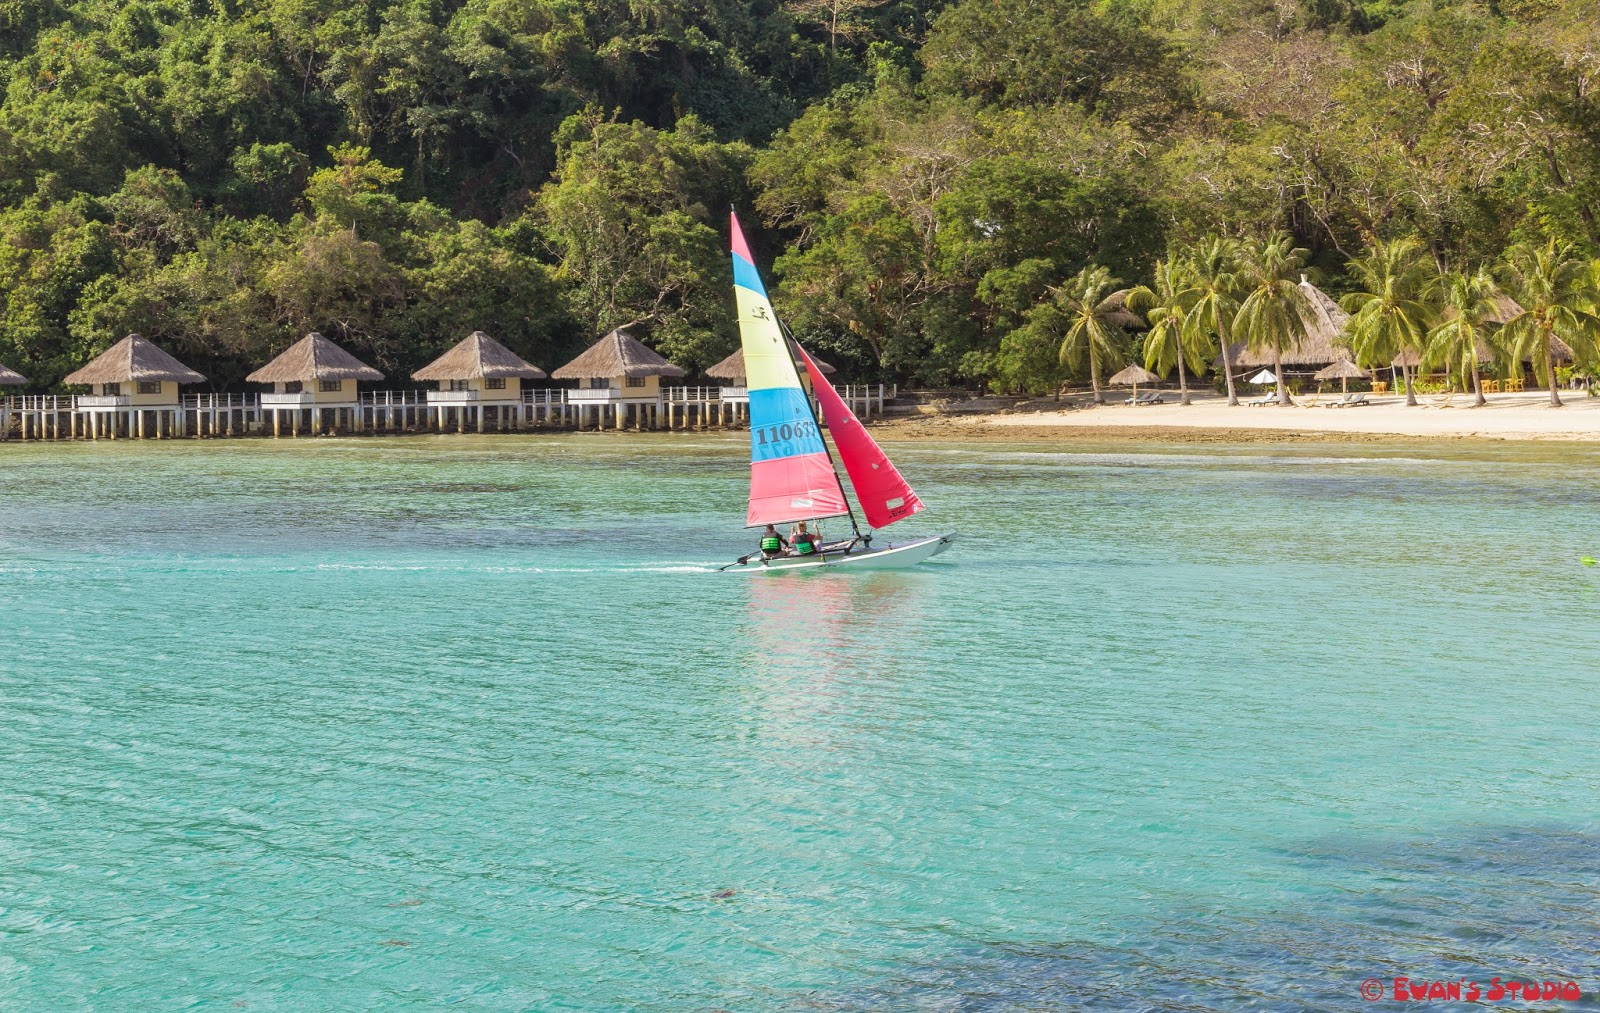 Sailing at the Apulit Island Resort in the Philippines.